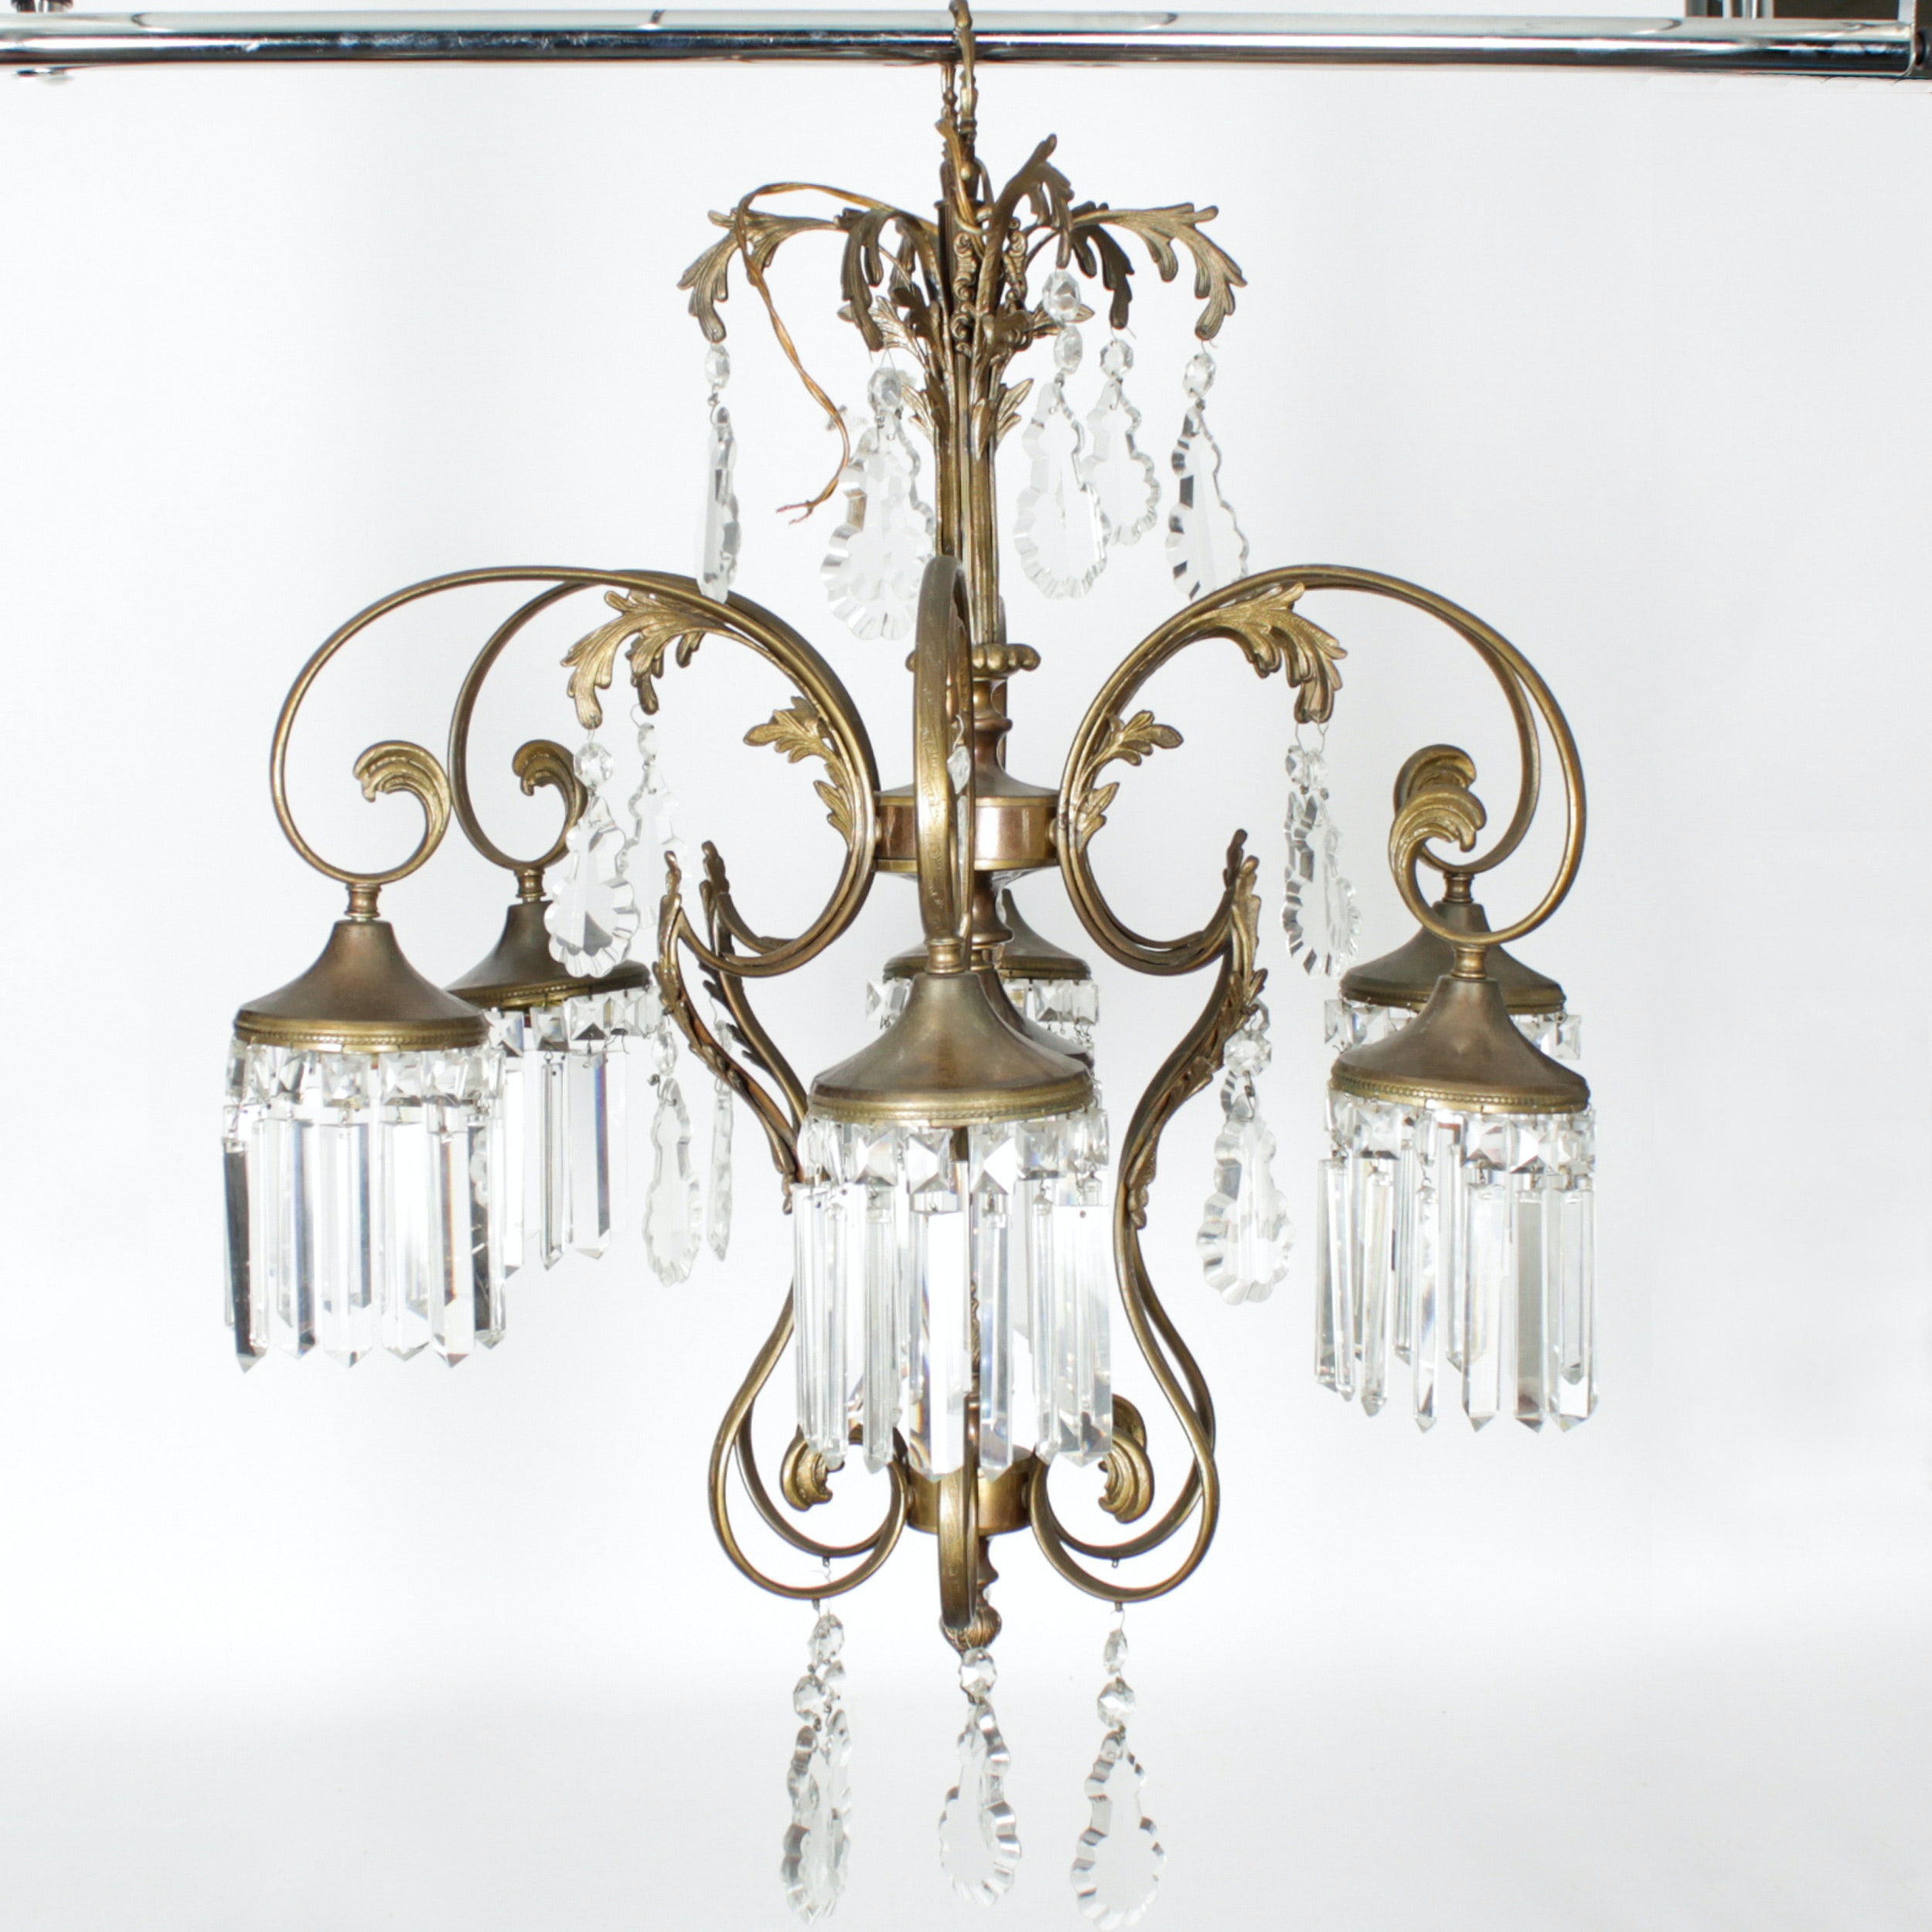 Brass and Glass Pendant Foliated Chandelier